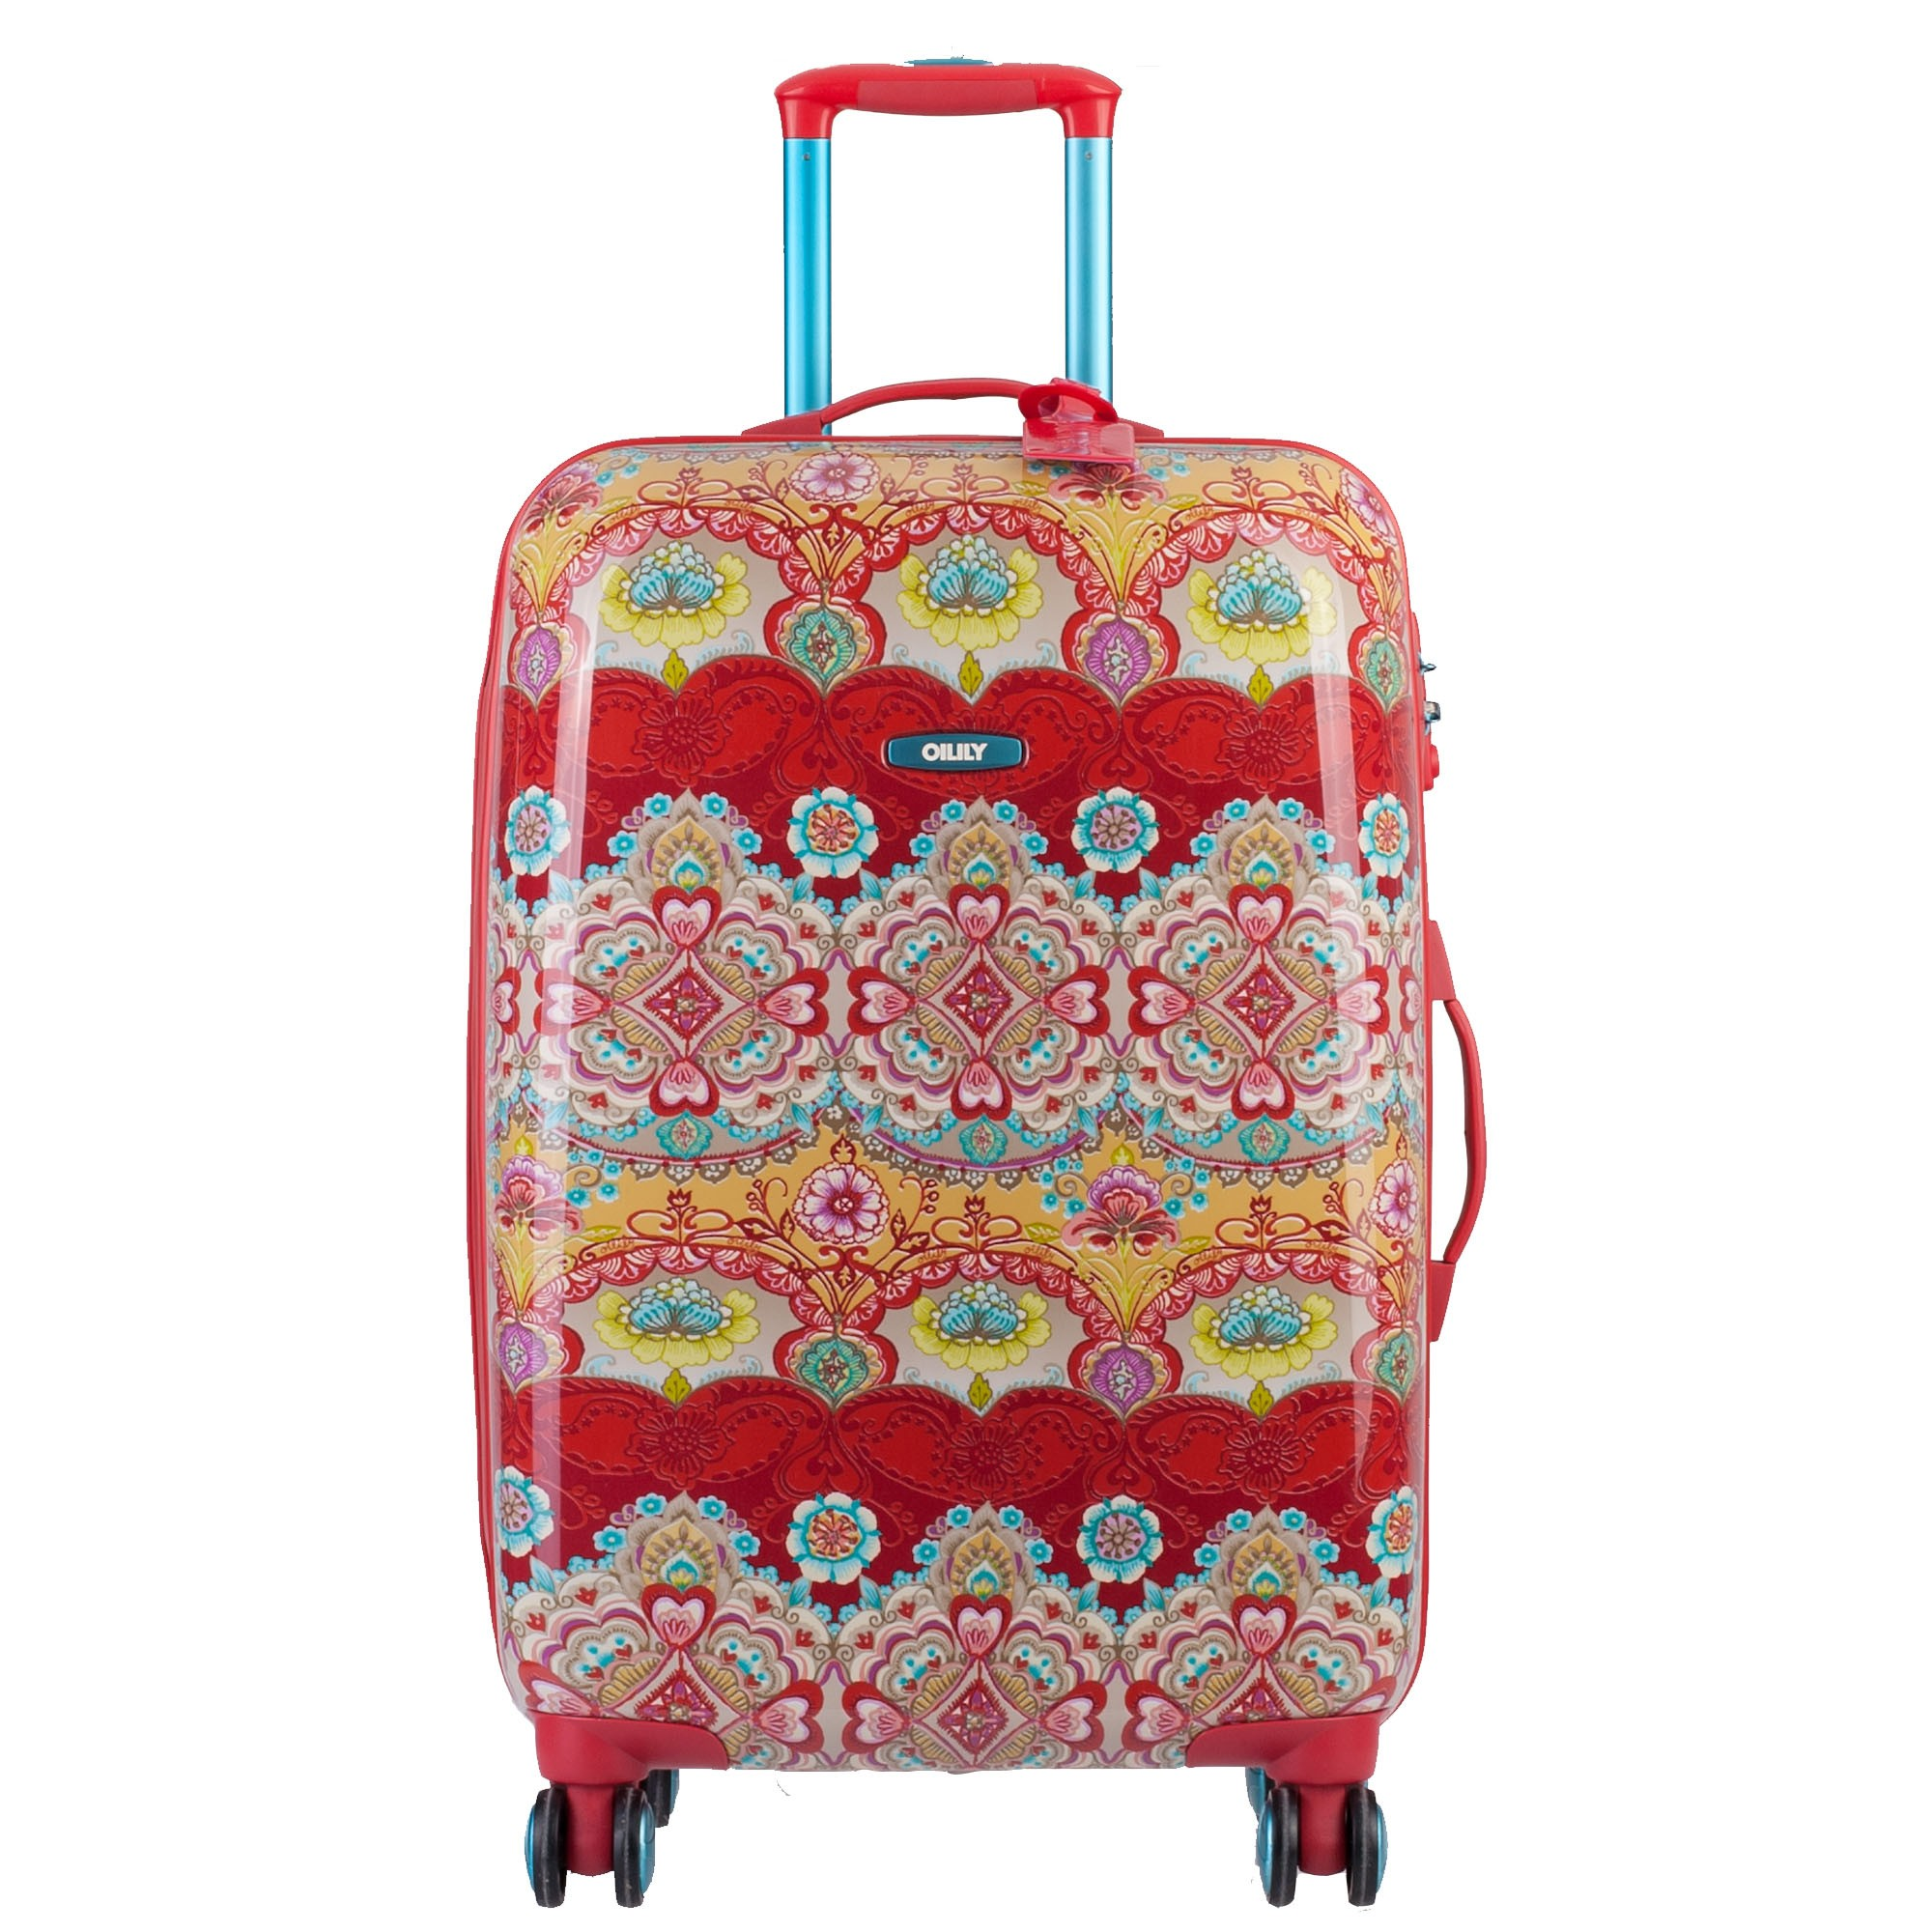 oilily travel 2013 lotus koffer trolley hartschale 4 rollen 70 cm 82l ebay. Black Bedroom Furniture Sets. Home Design Ideas